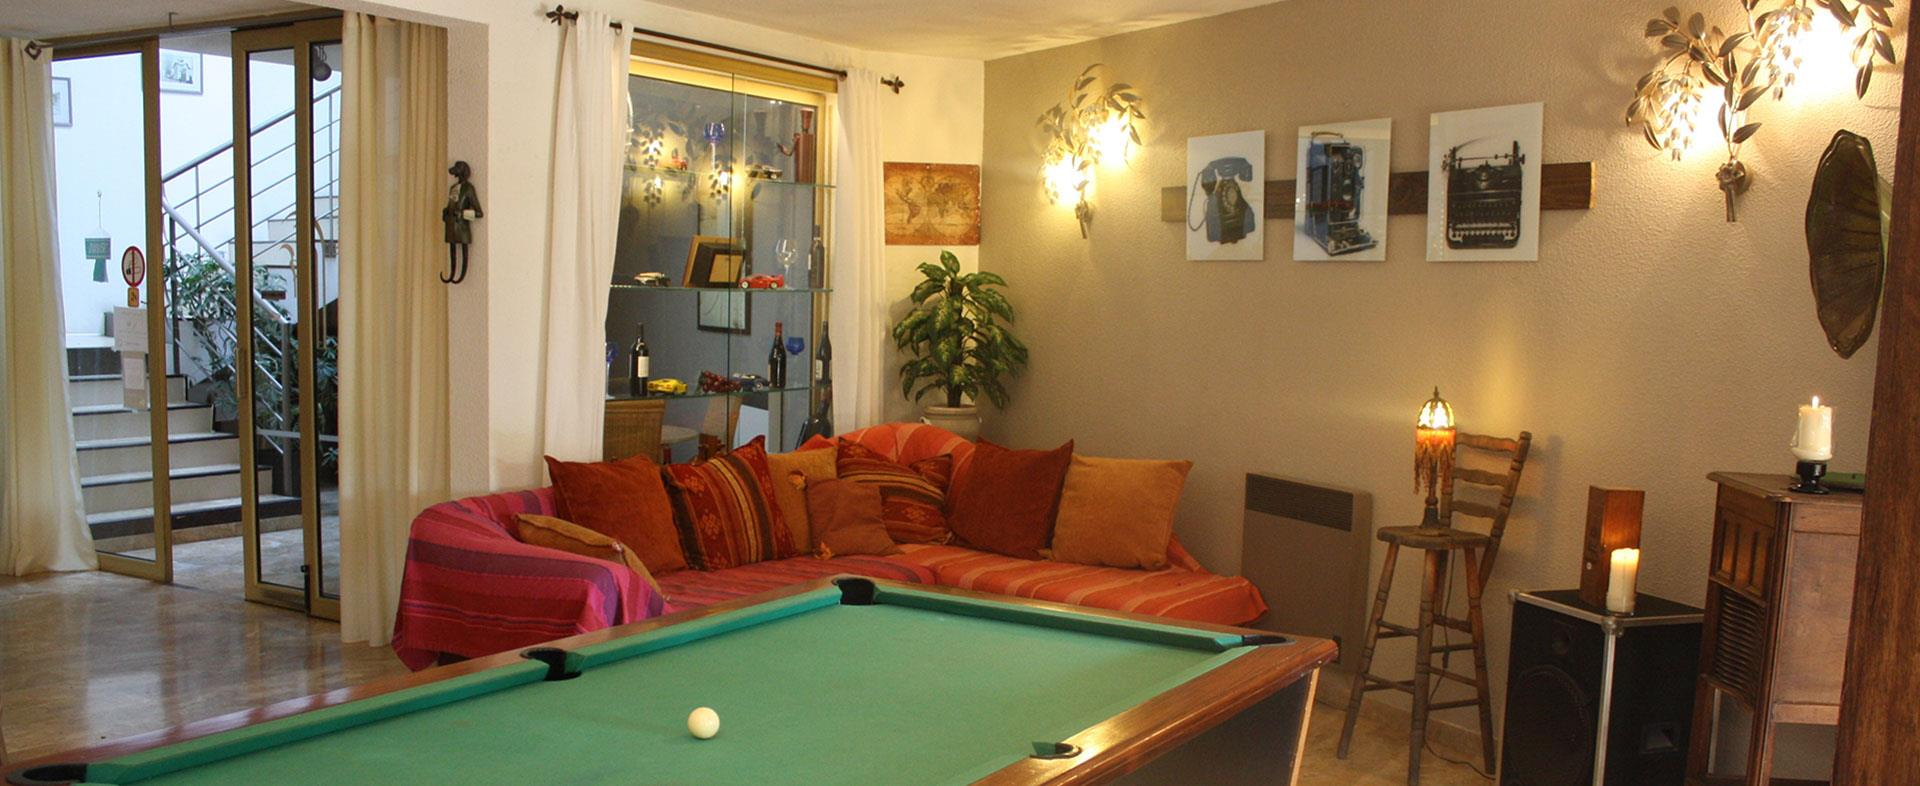 The hotel Saint Benoit located in Hérault is made up of a living-room with billiards.